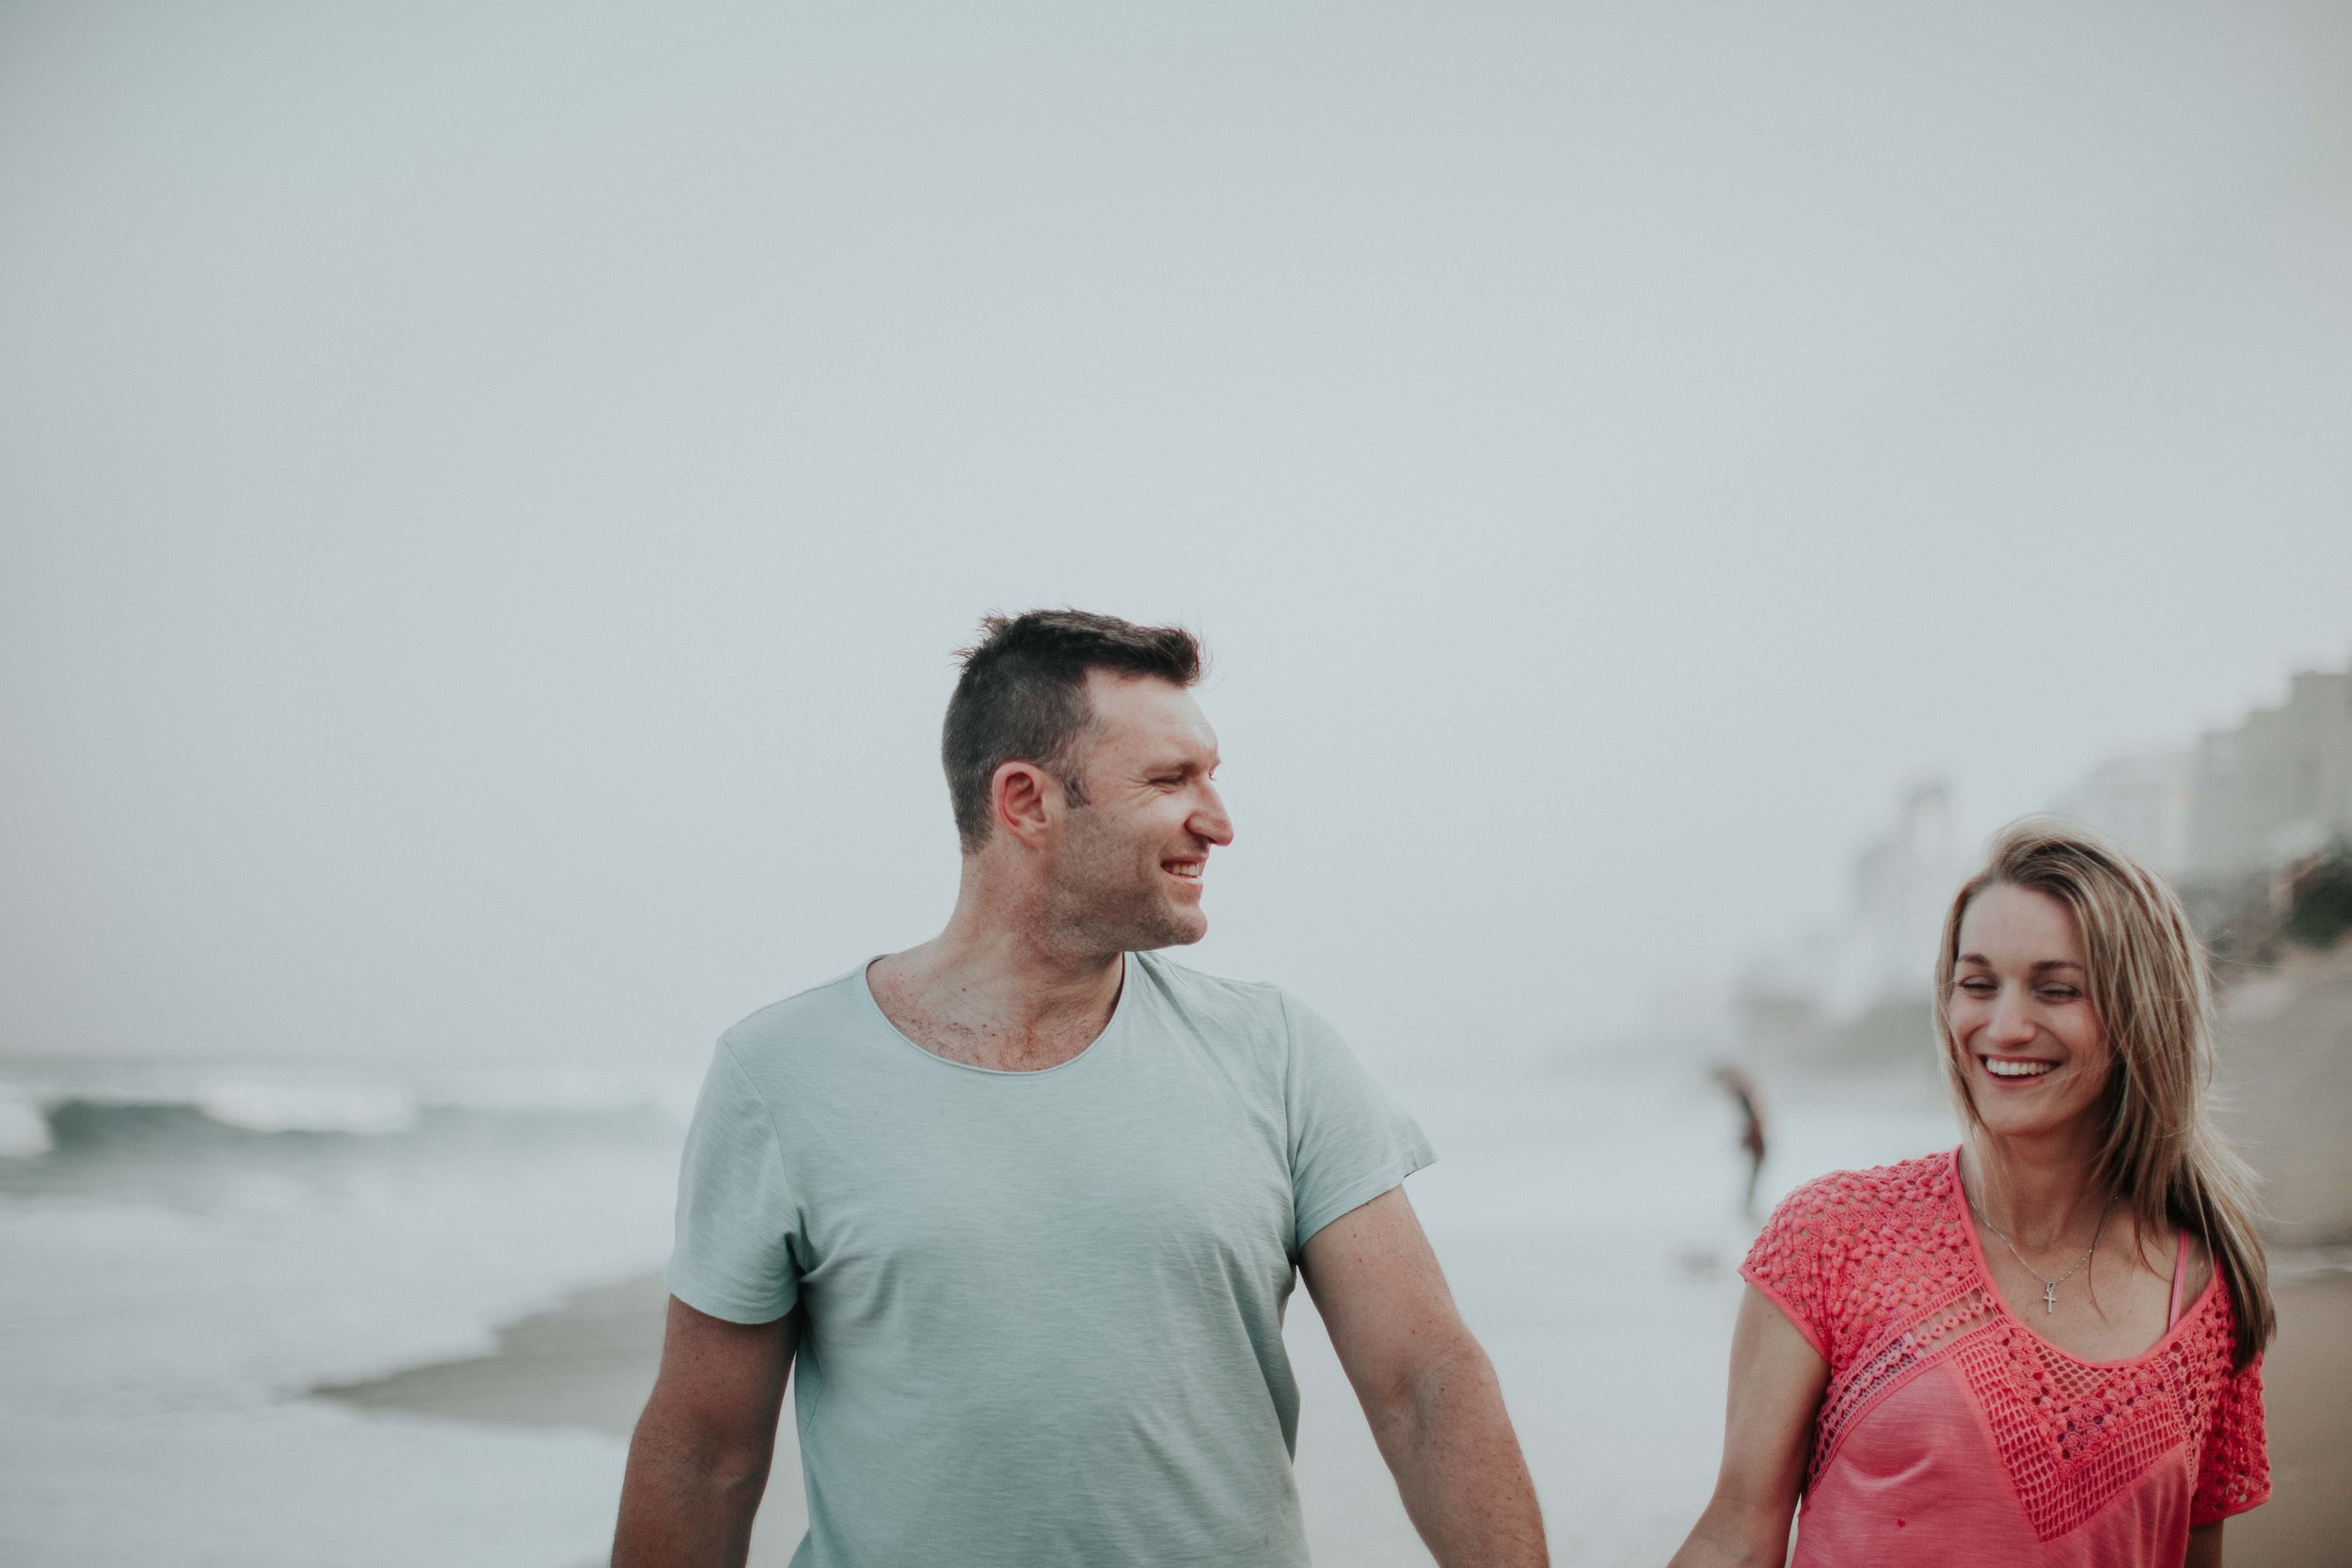 Kristi Smith Photography - Engagement Shoot - Steve & Tarryn 13.jpg